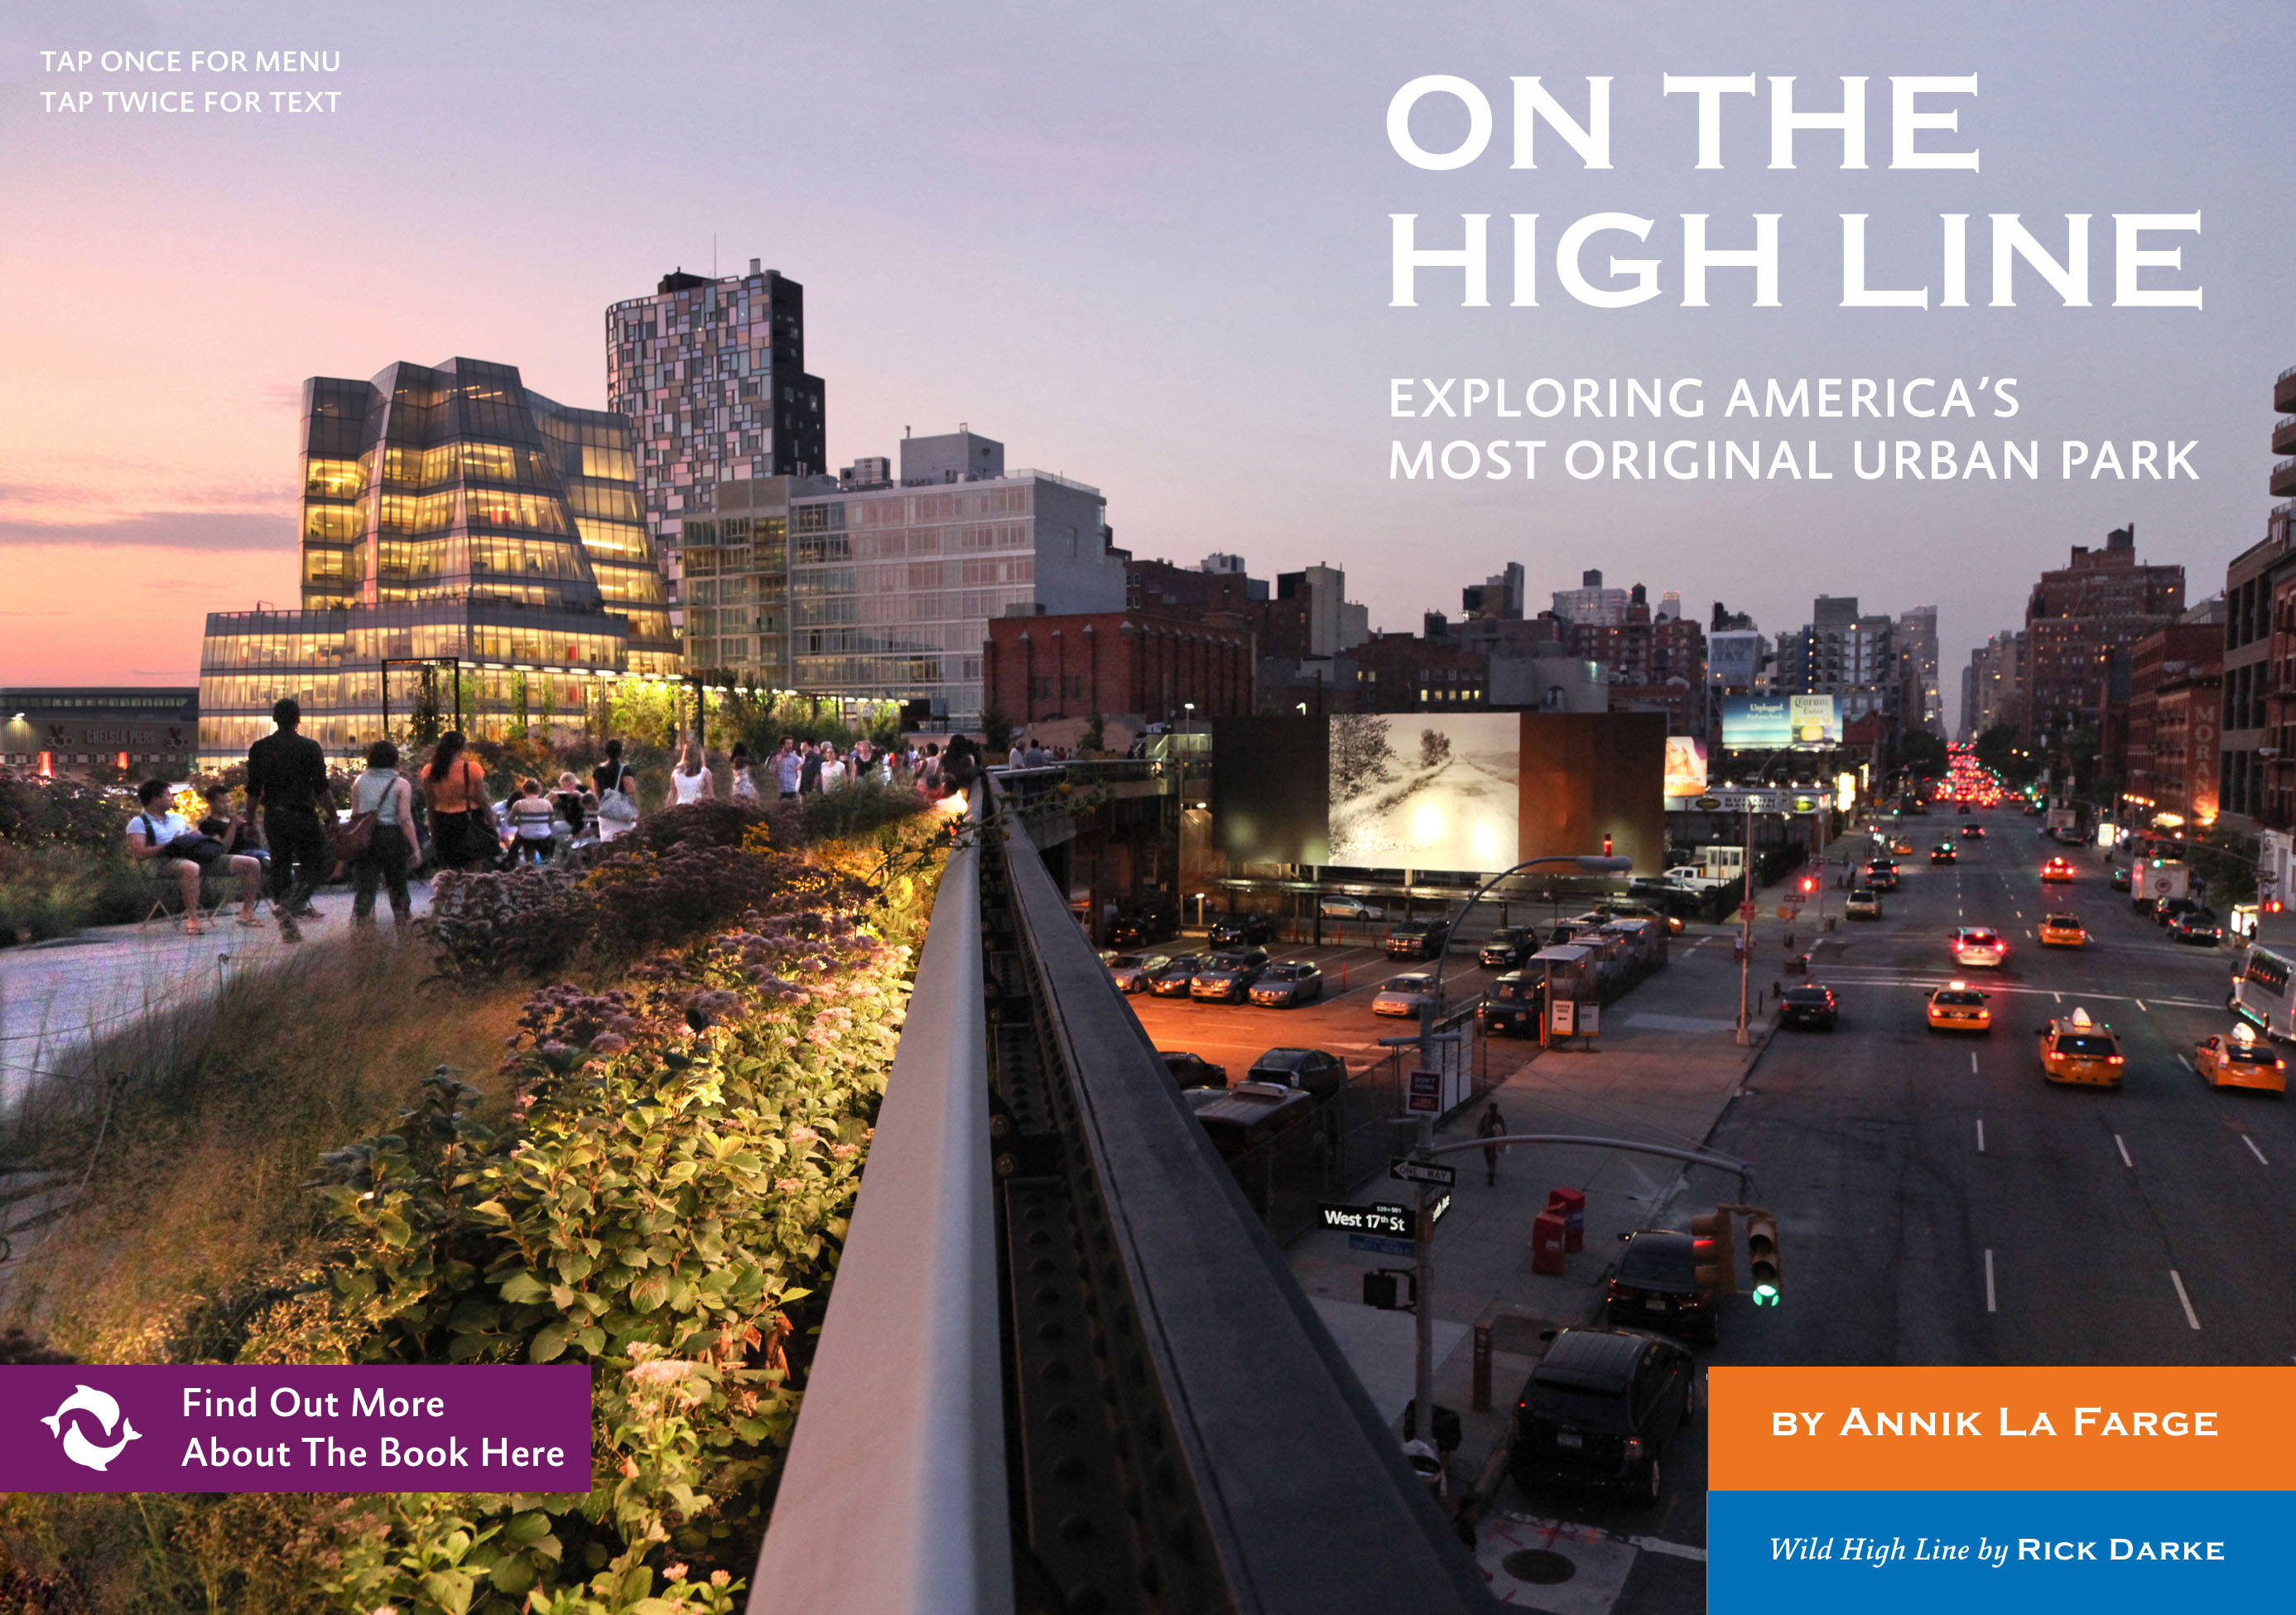 Apps That Let You Design A House On The High Line Is An App That Lets You Explore The